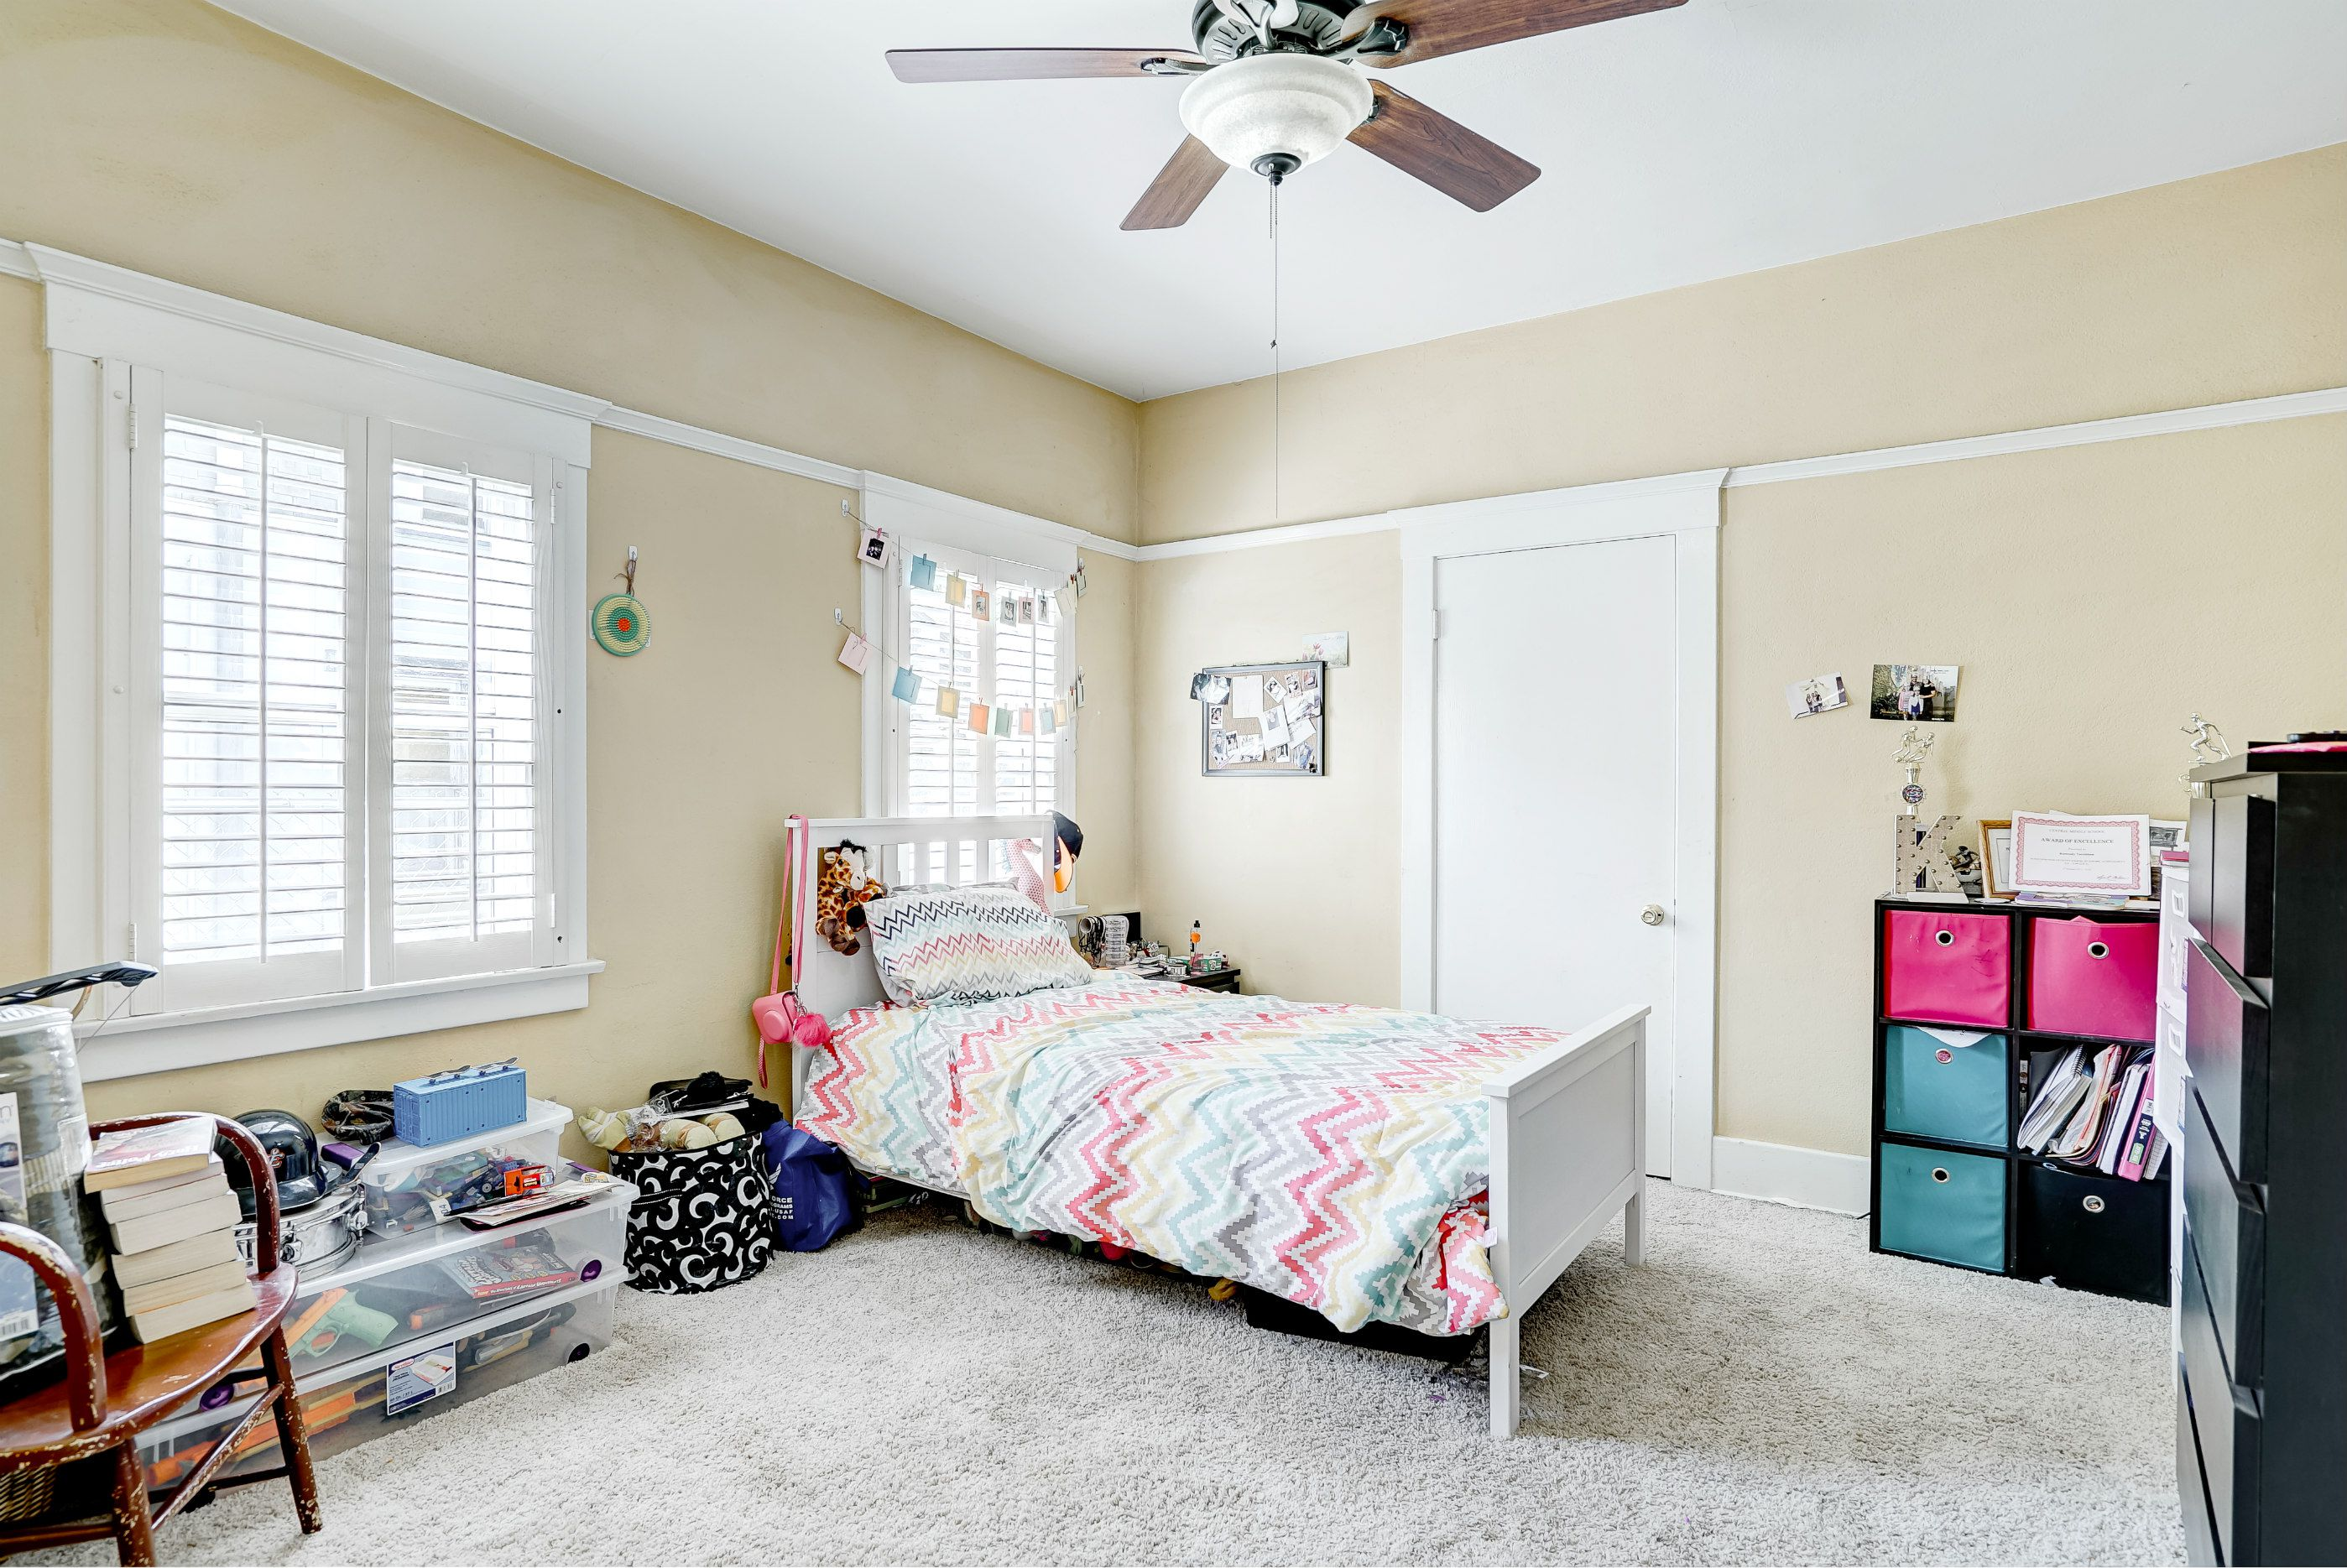 2nd of 4 bedrooms, this one with carpeting, window shutters, and ceiling fan.